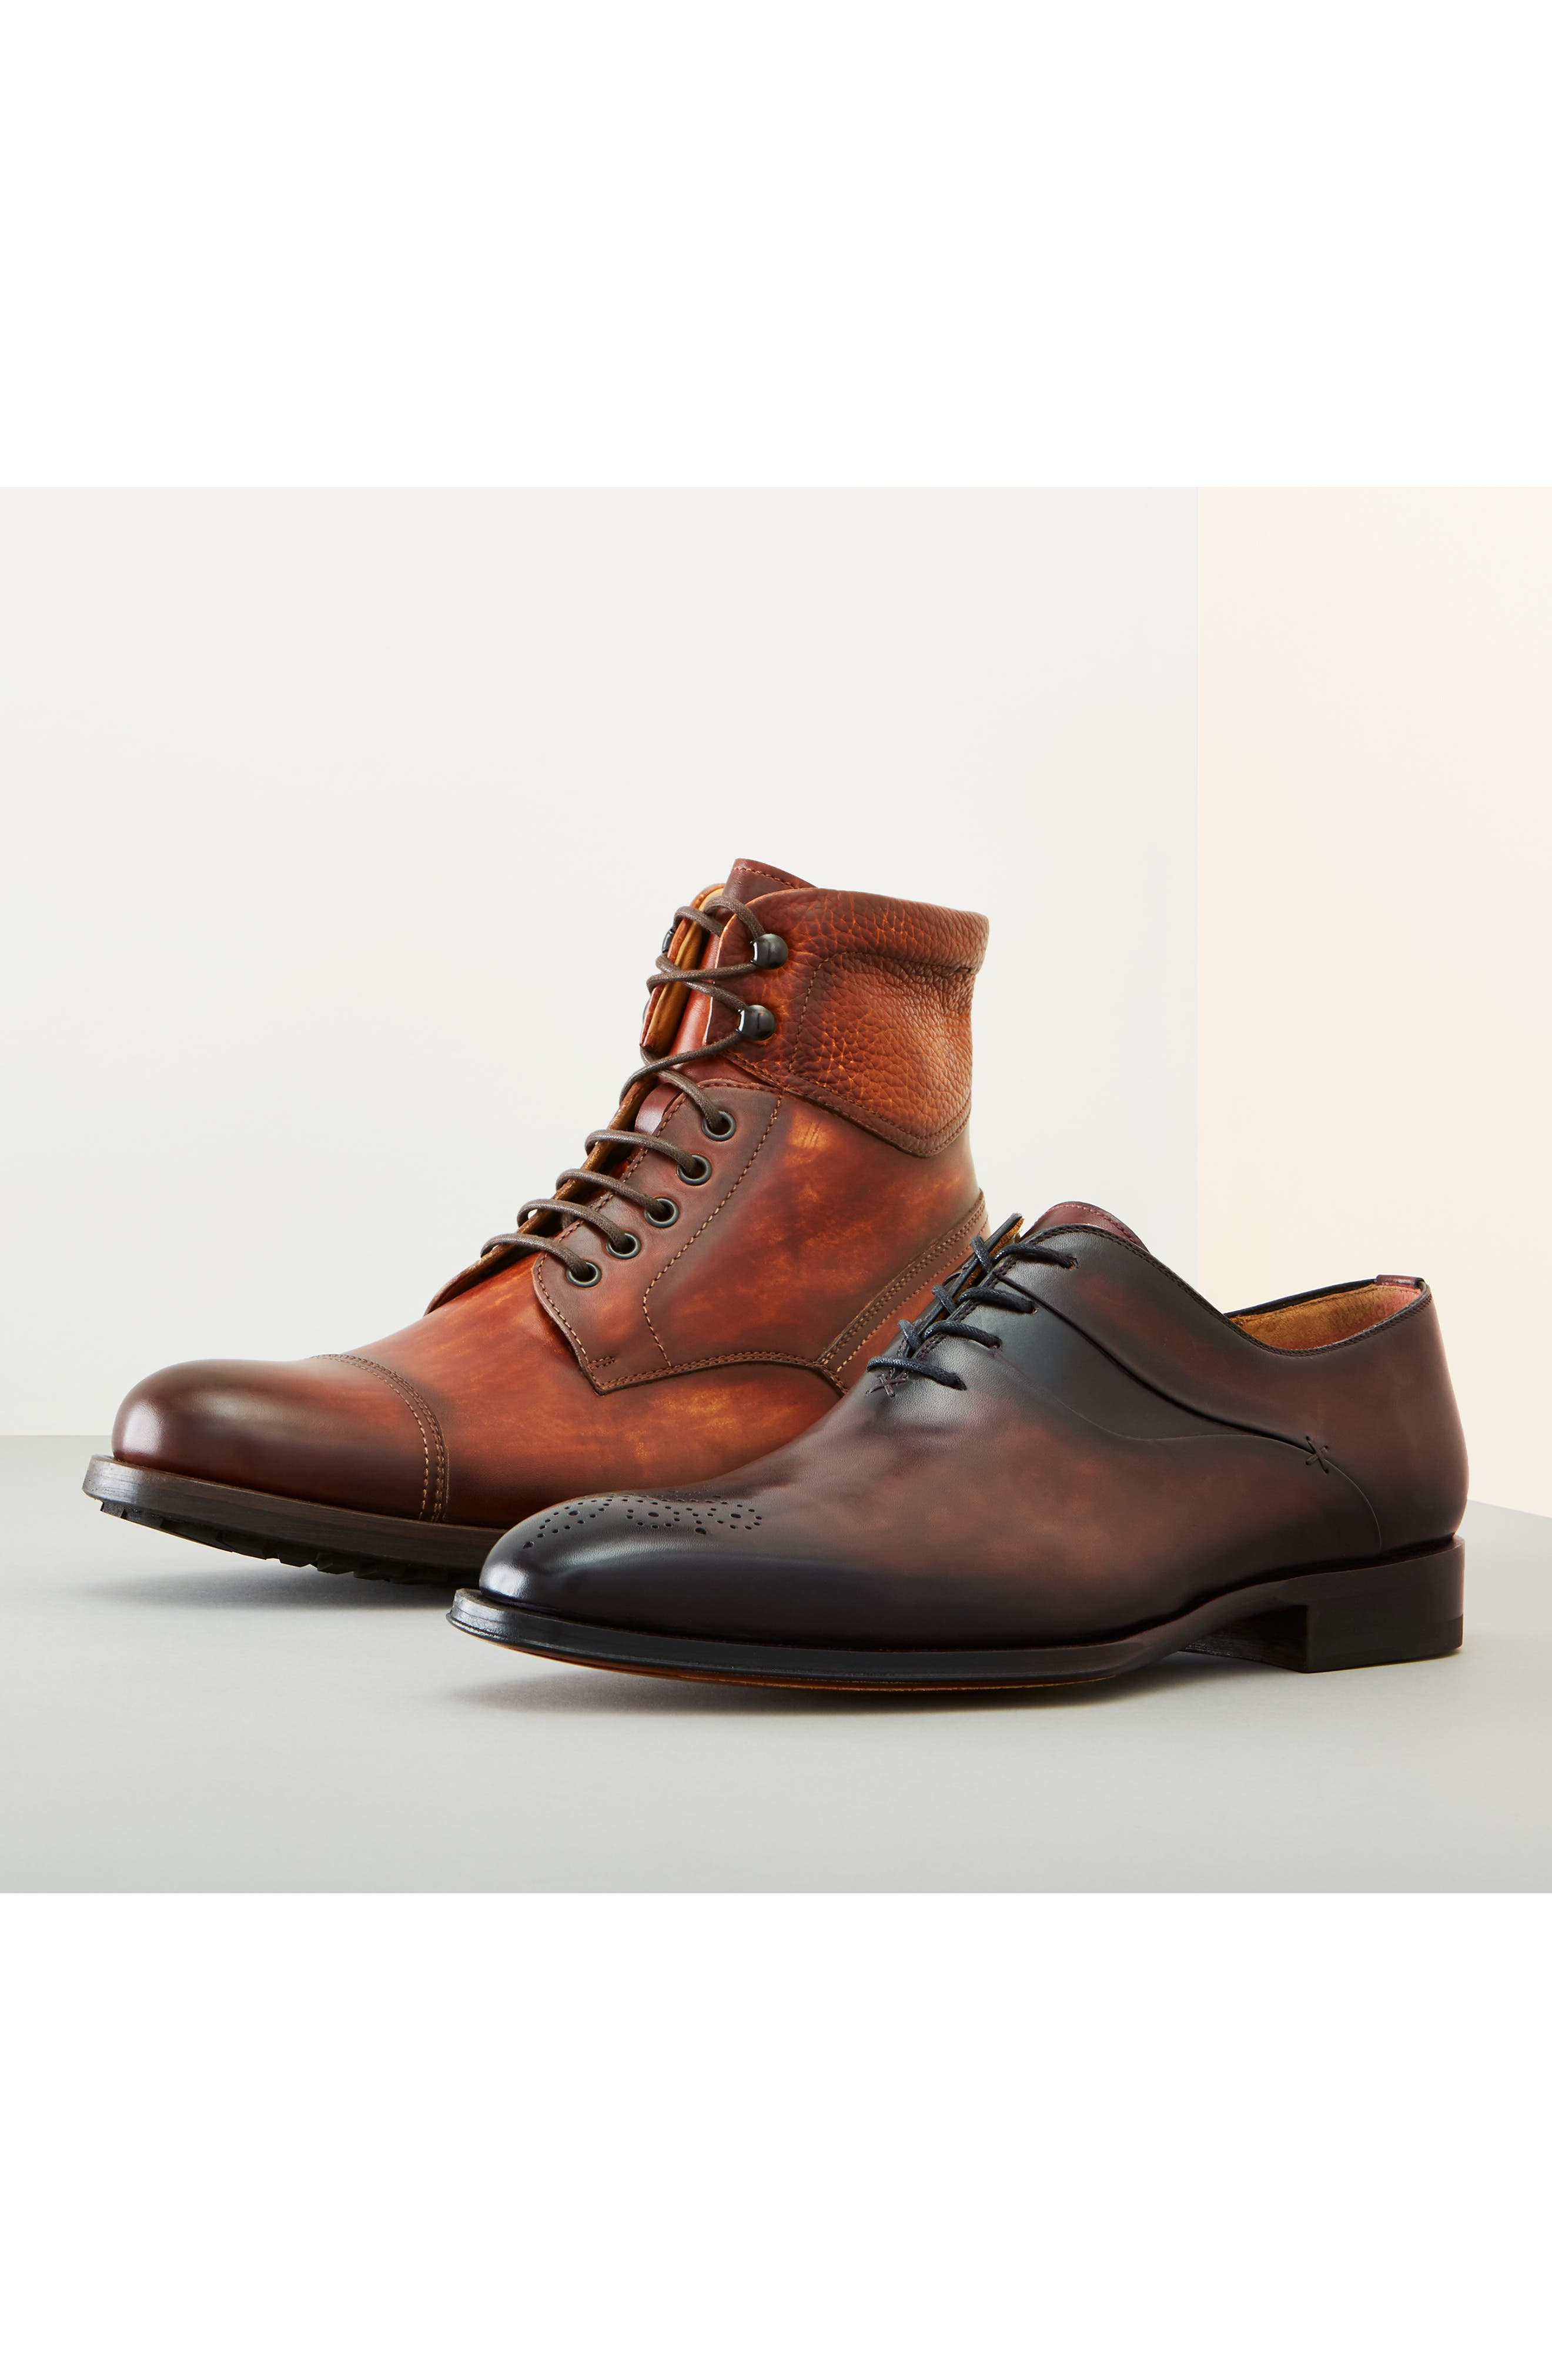 MAGNANNI, Peyton Cap Toe Boot, Alternate thumbnail 7, color, TOBACCO LEATHER